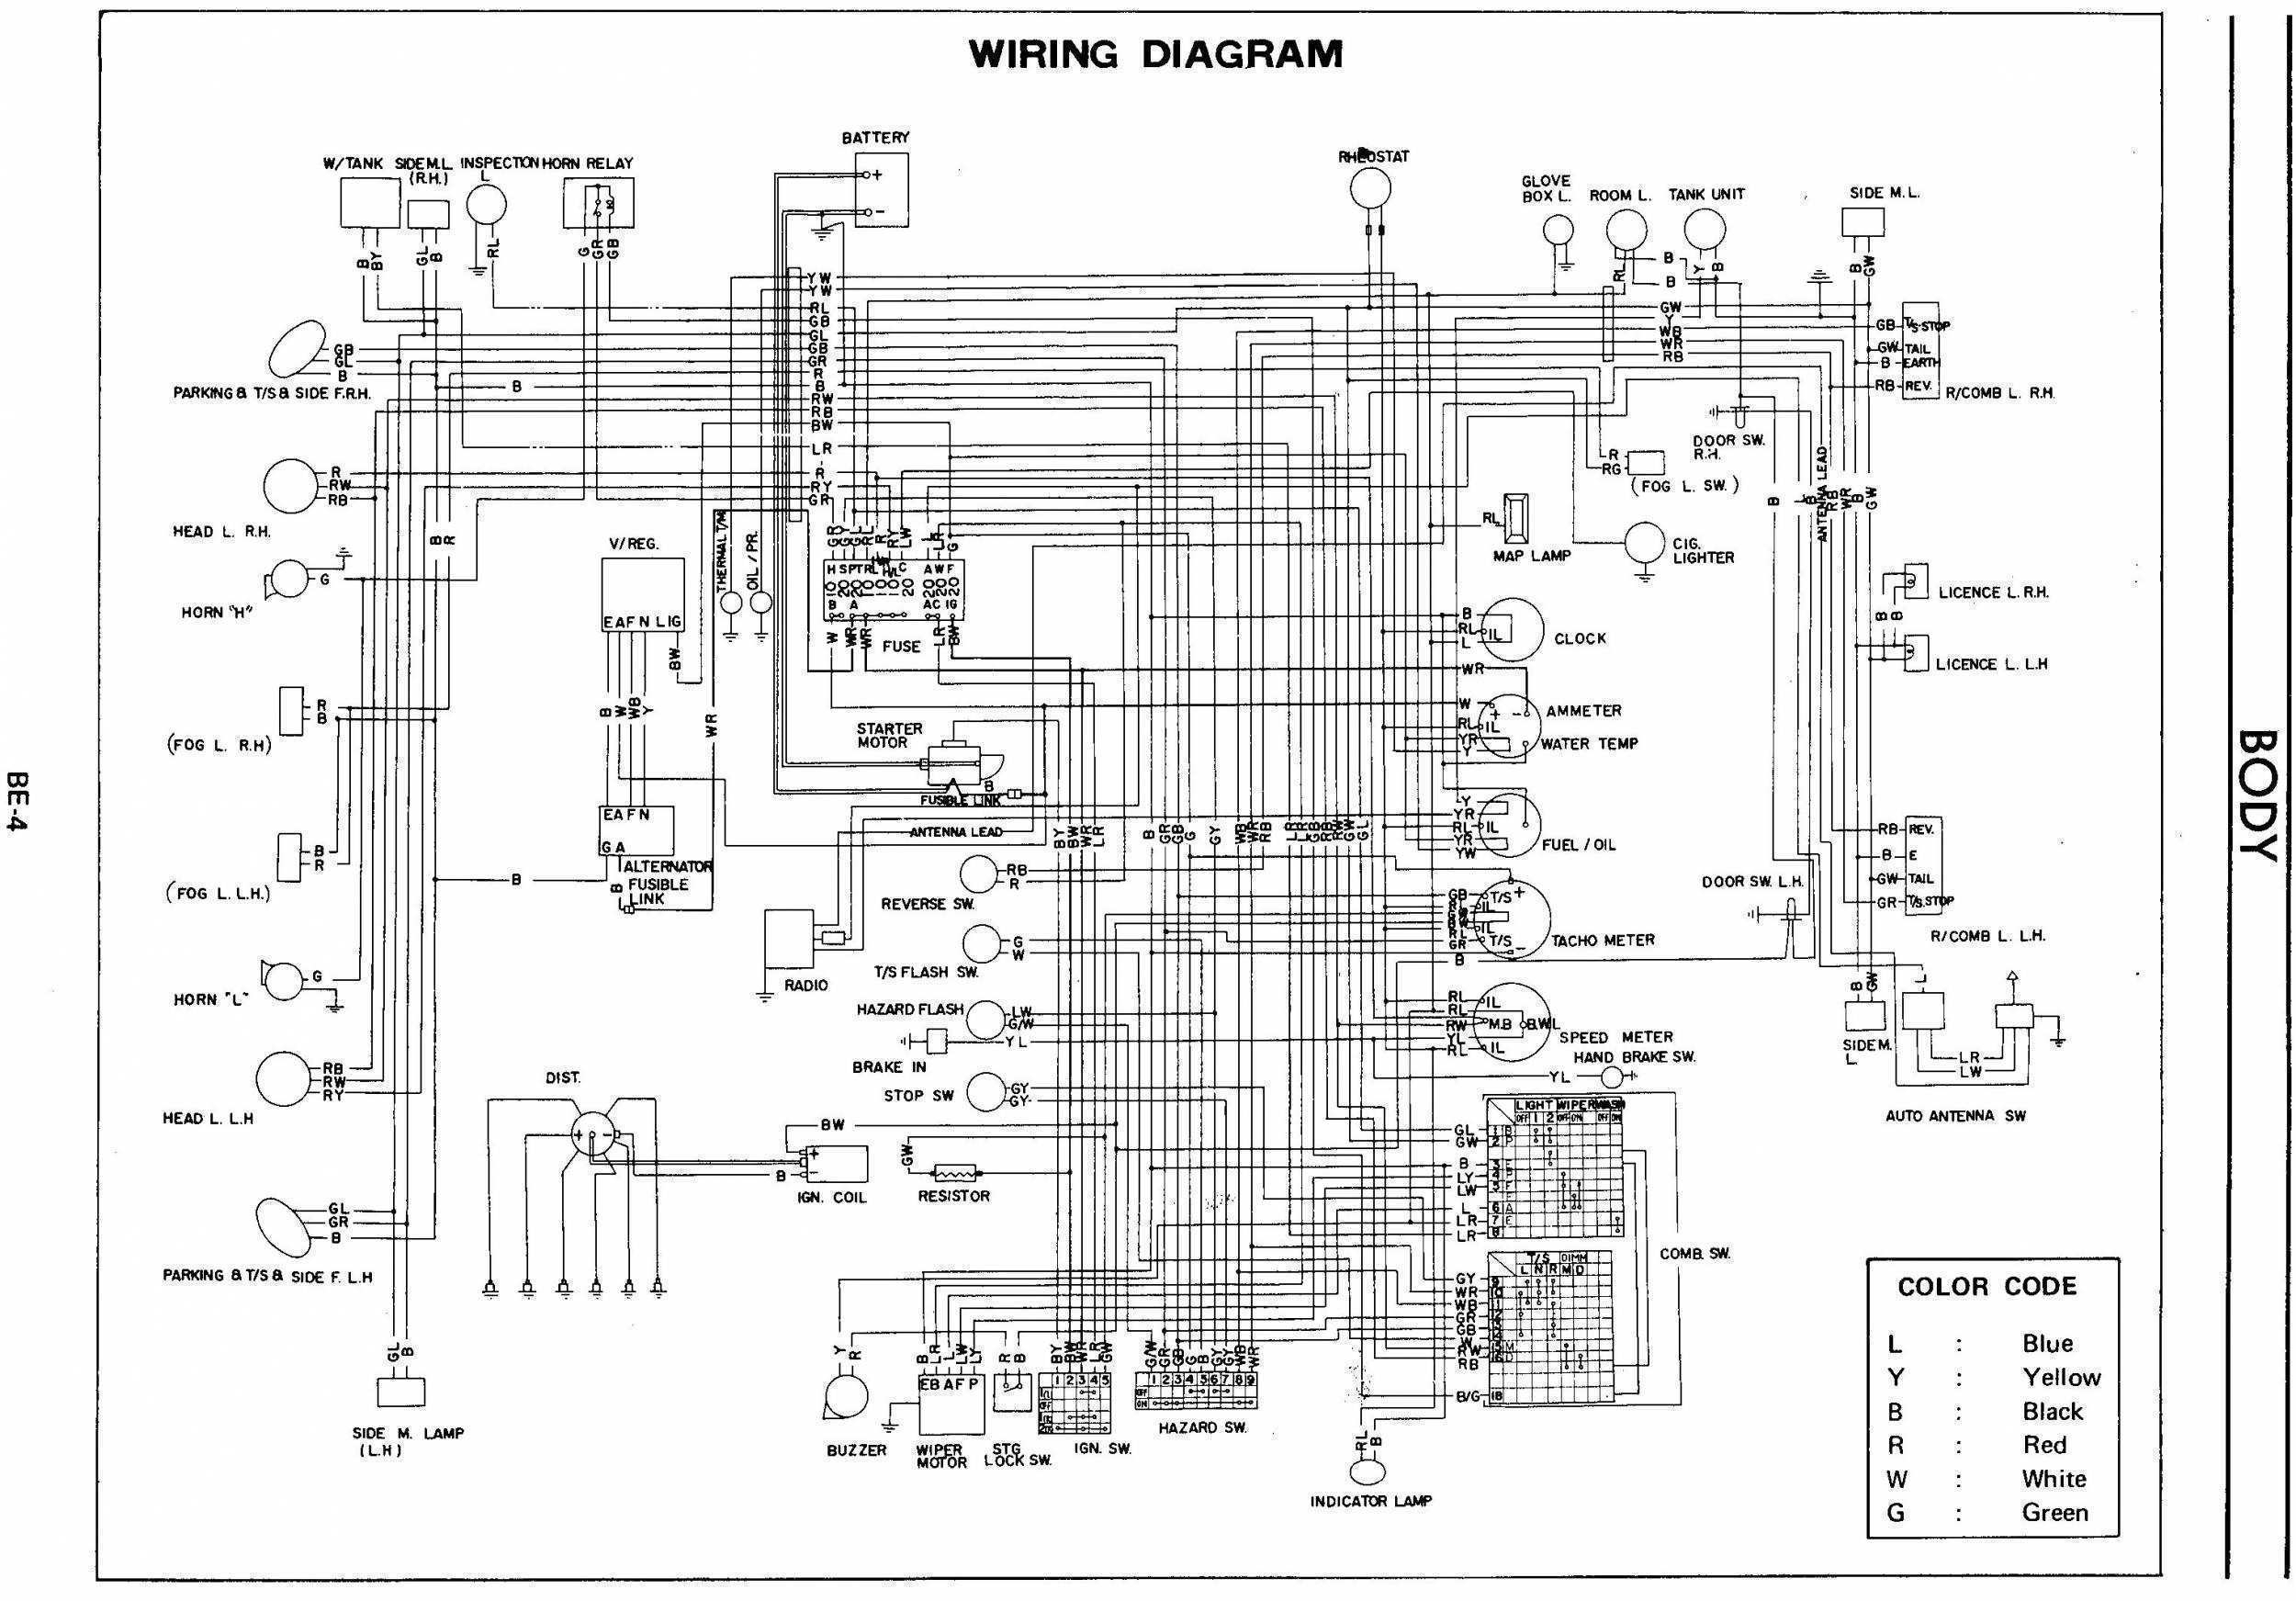 spartan wiring diagrams pictures wiring diagrams